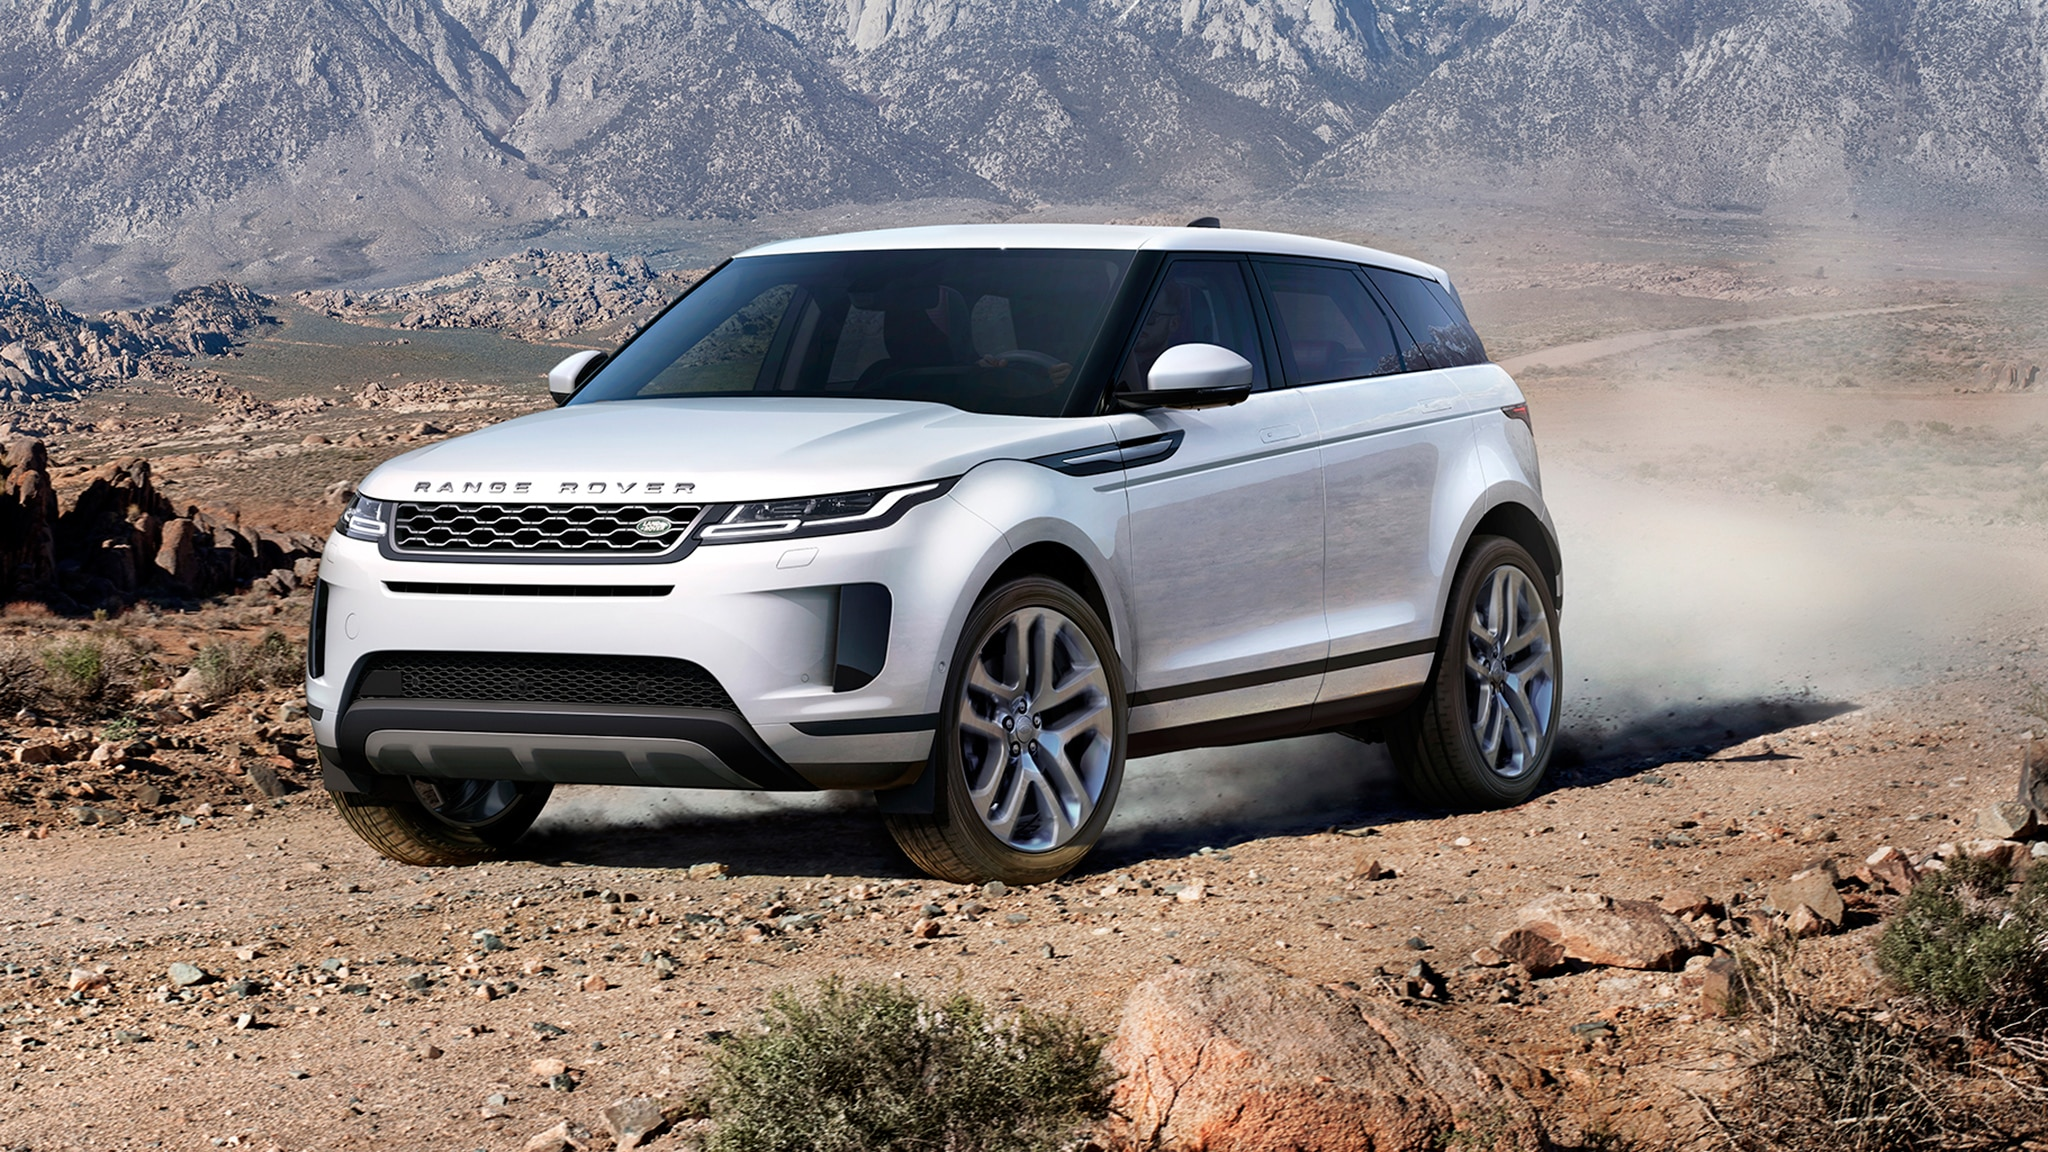 78 All New 2020 Land Rover Lr2 First Drive